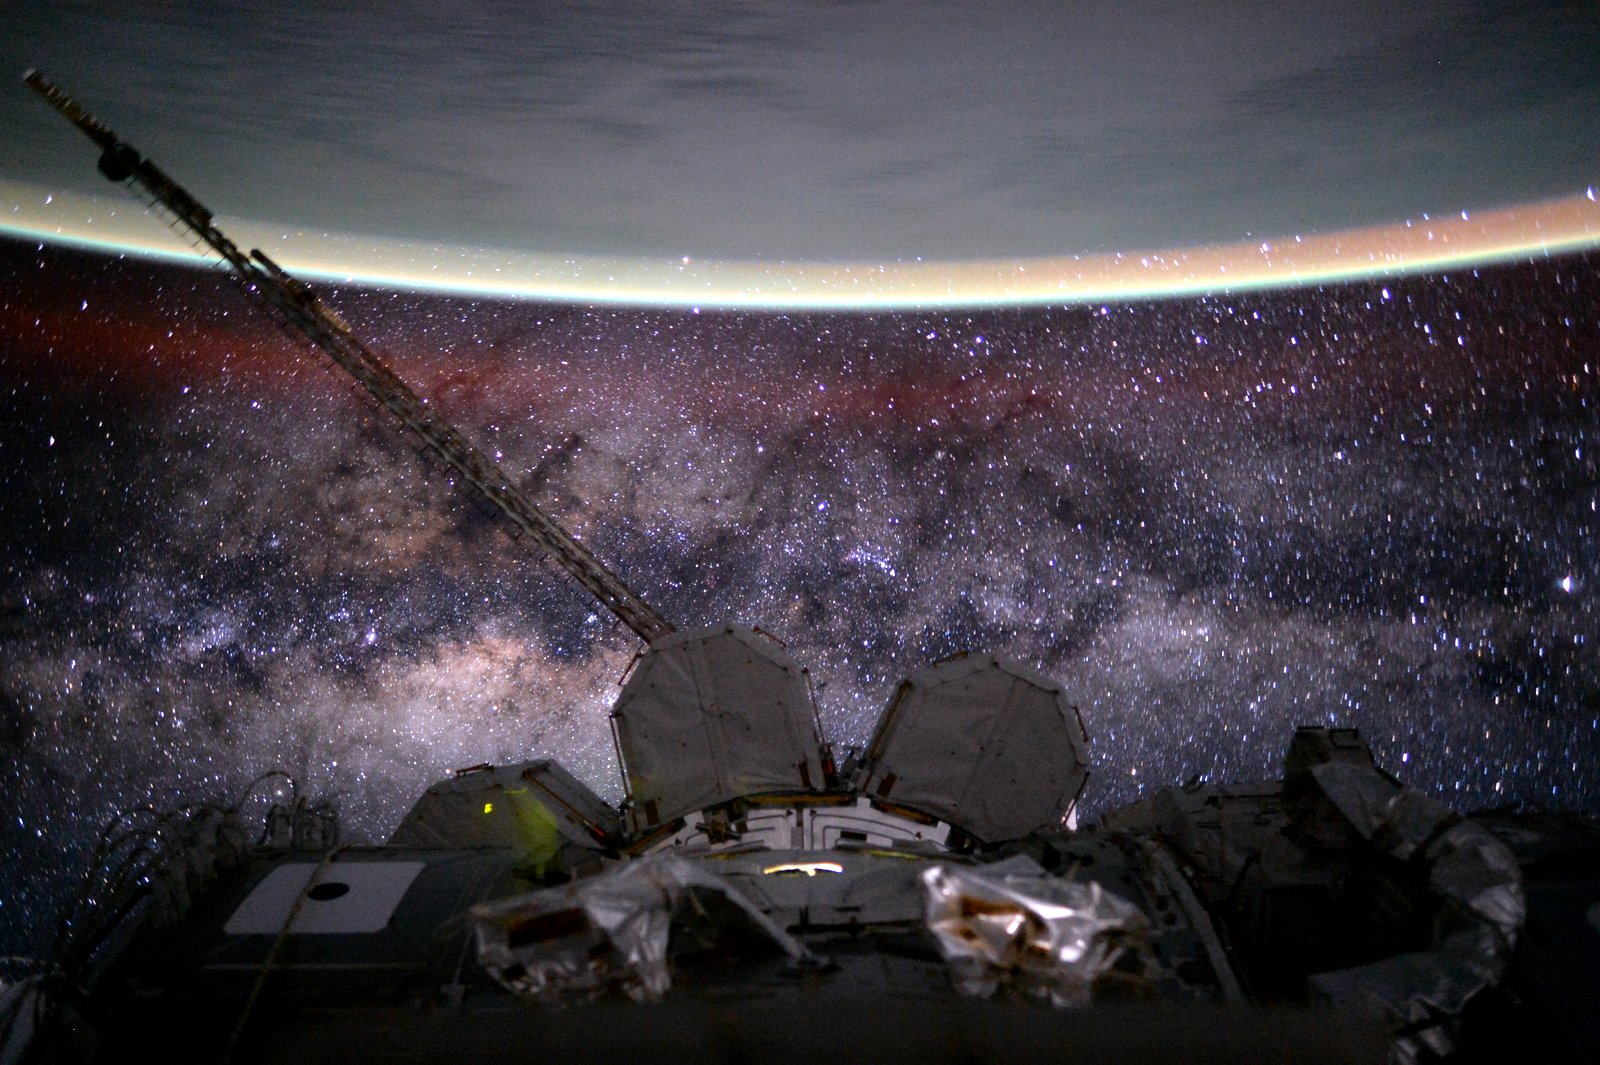 Earth and the Milky Way